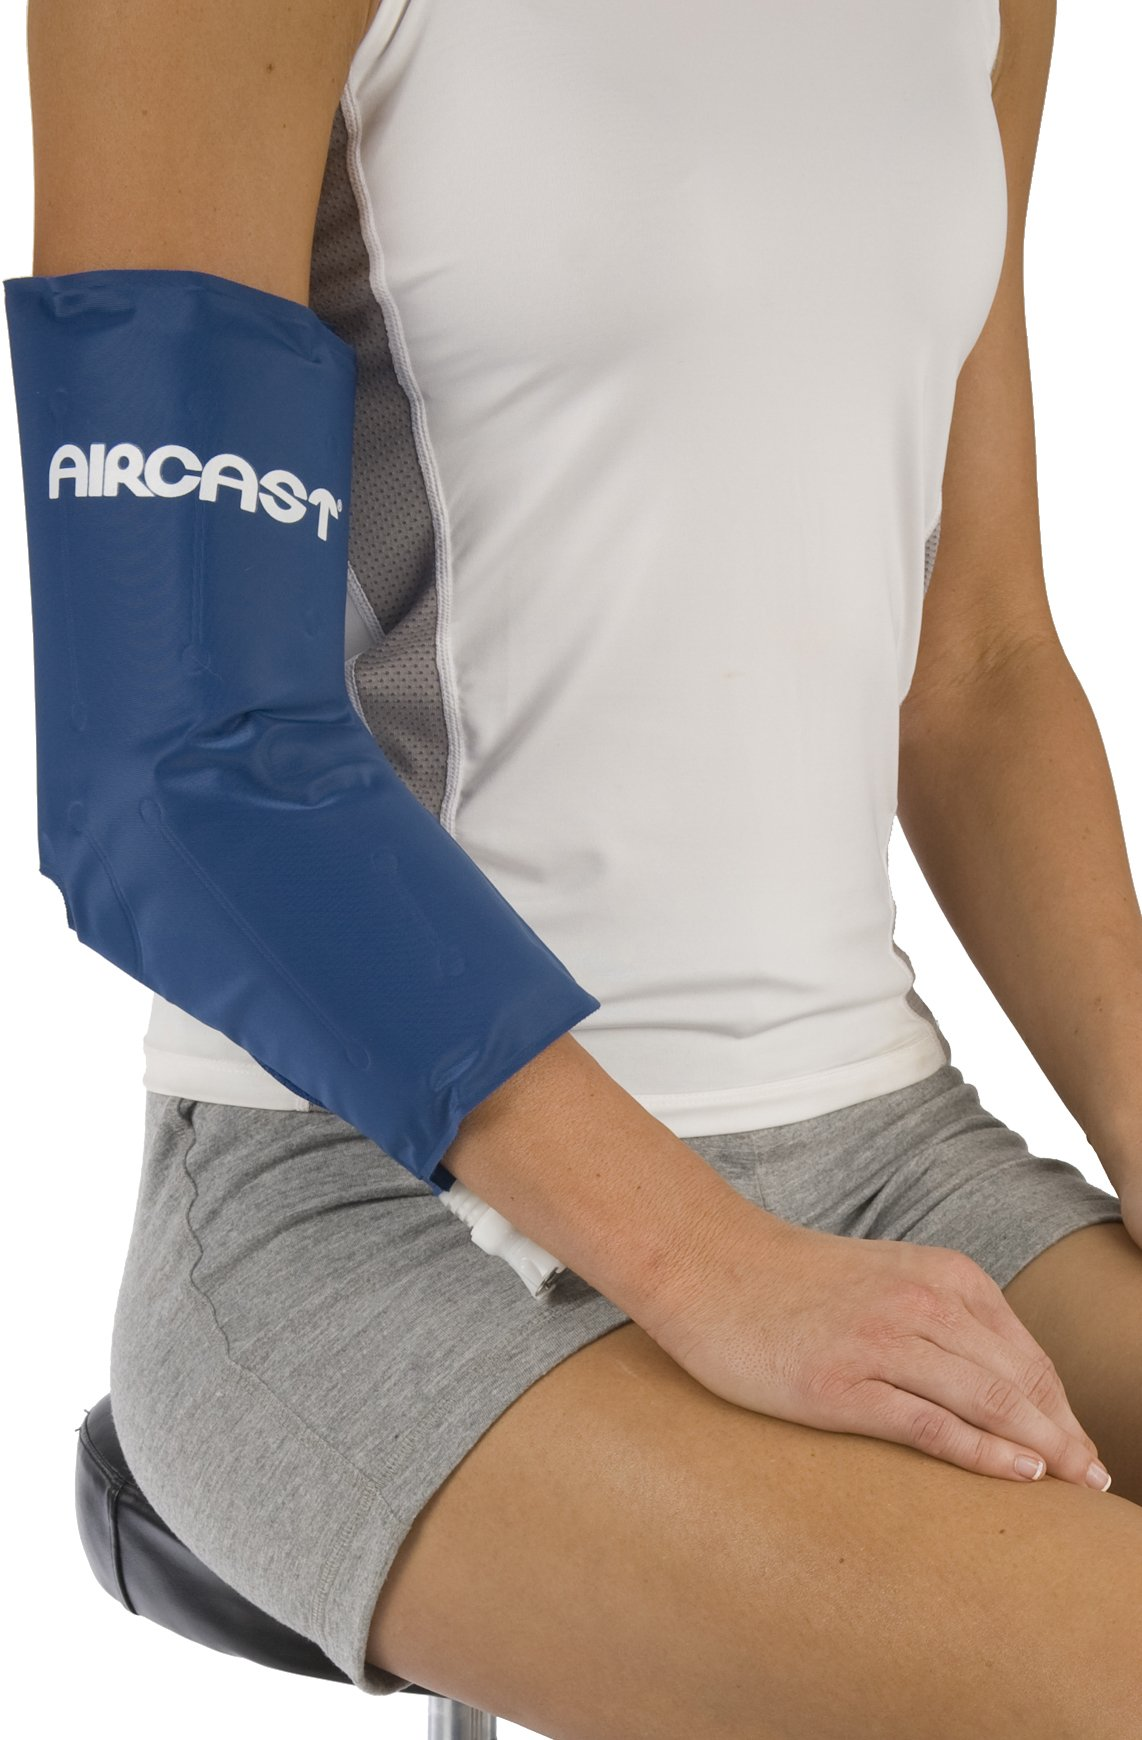 Aircast Cryo/Cuff Cold Therapy: Elbow Cryo/Cuff with Non-Motorized (Gravity-Fed) Cooler, One Size Fits Most by DonJoy